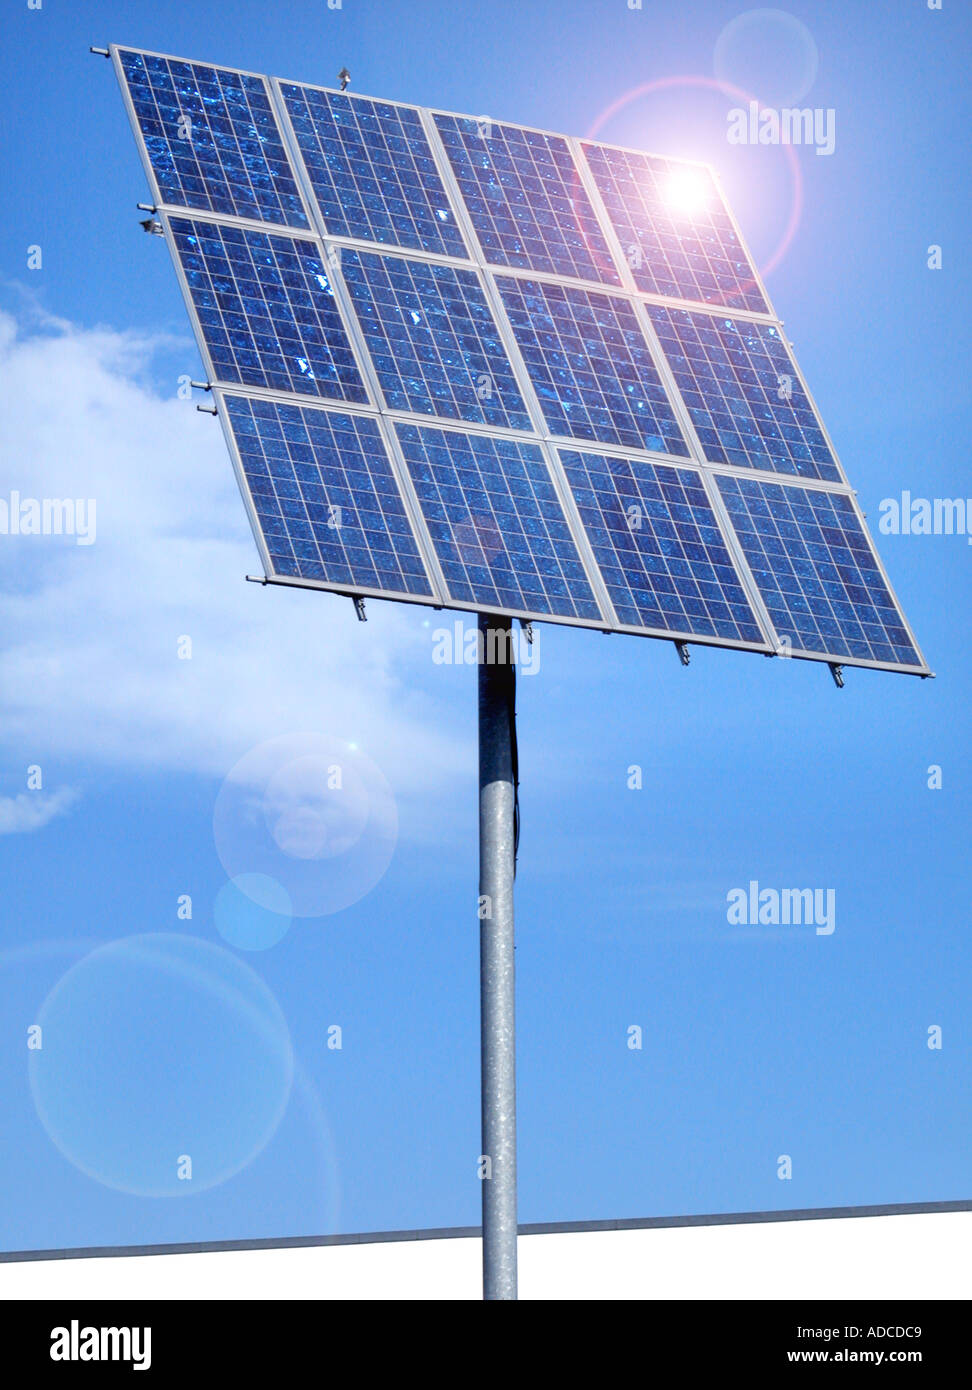 SOLAR electric panel power and relection reflexion  sun energy blue sky - Stock Image